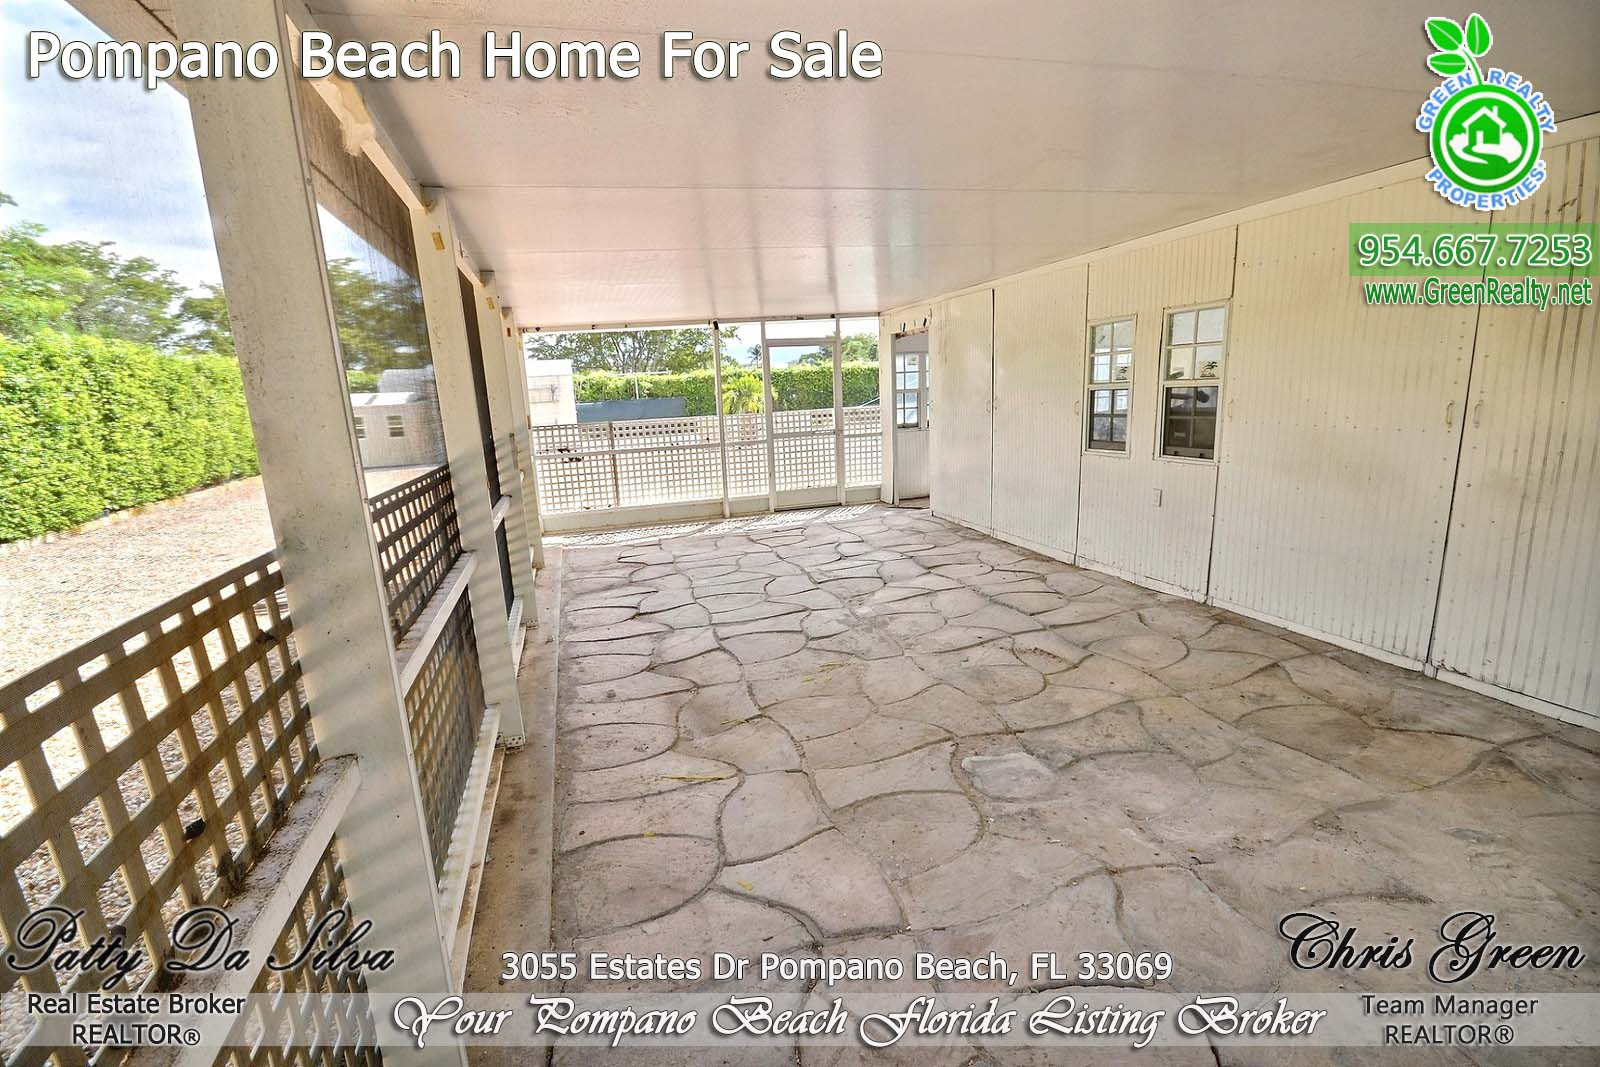 29 Pompano Beach Real Estate For Sale (5)